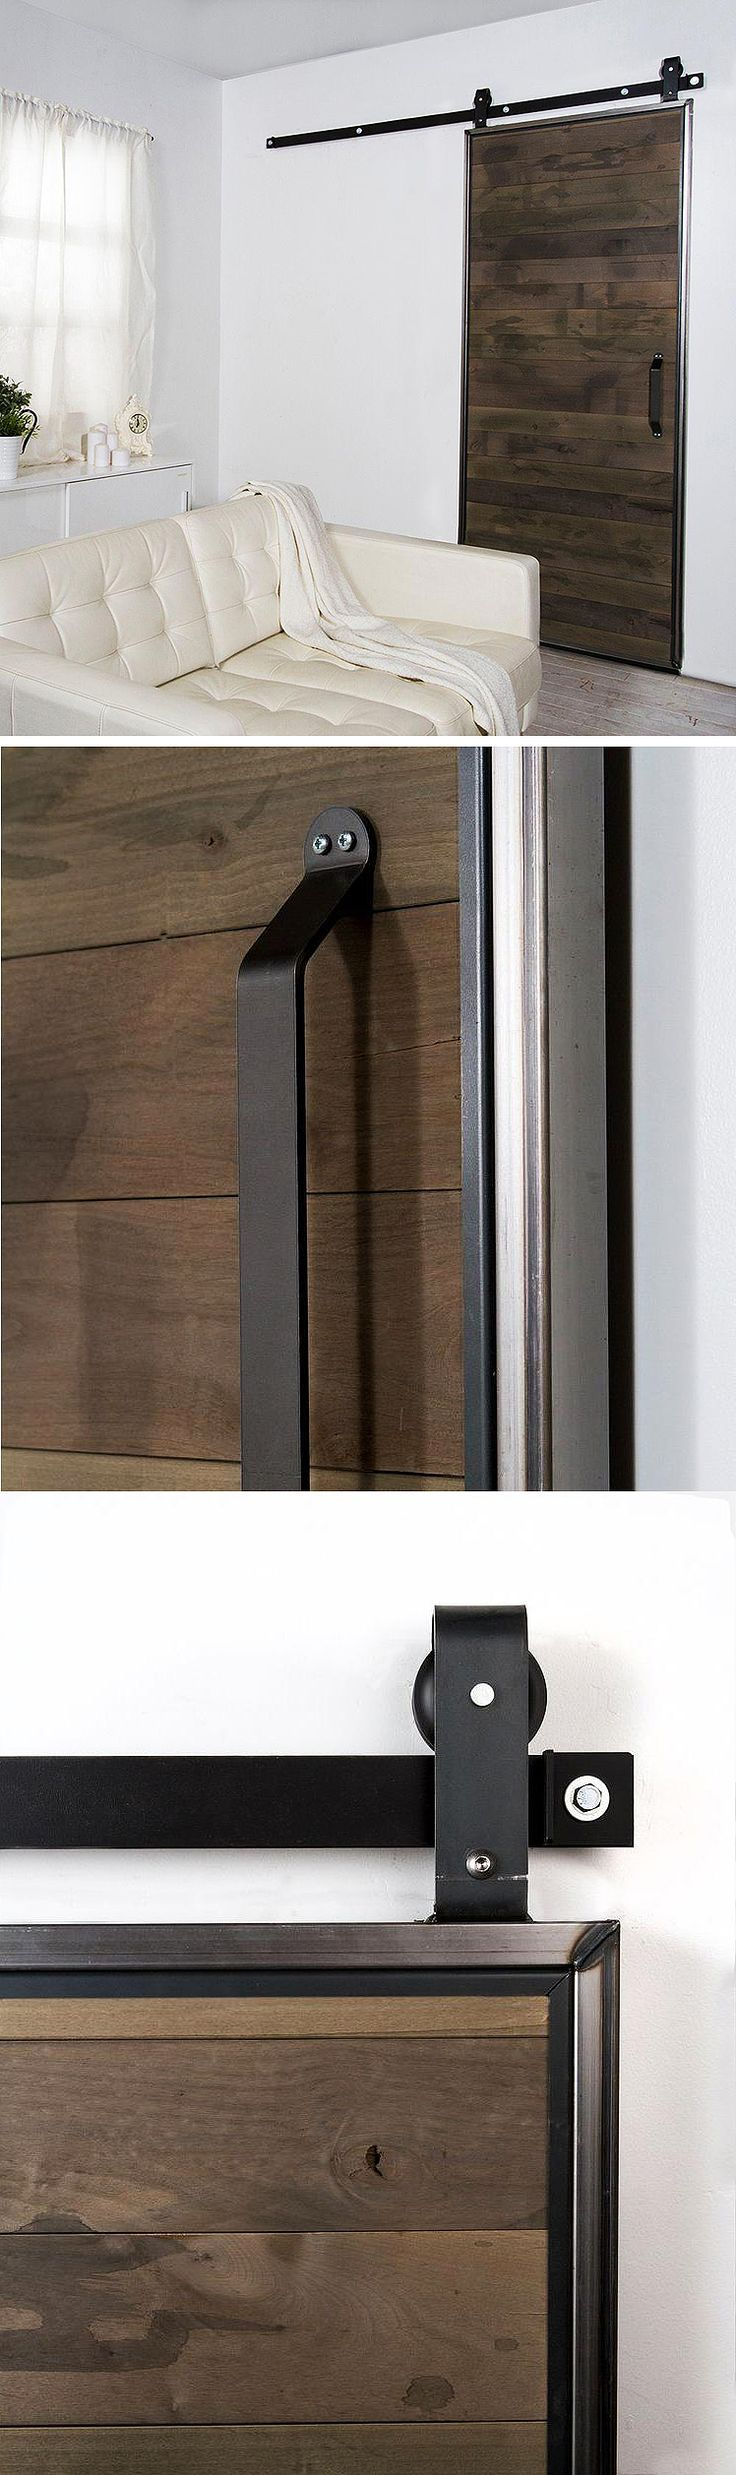 Here's everything you need to add a beautiful sliding barn door to your home. This kit includes the hardware and the solid alder wood slat door. It adds an industrial or rustic look to your room, and a sliding door can be a great space saver.